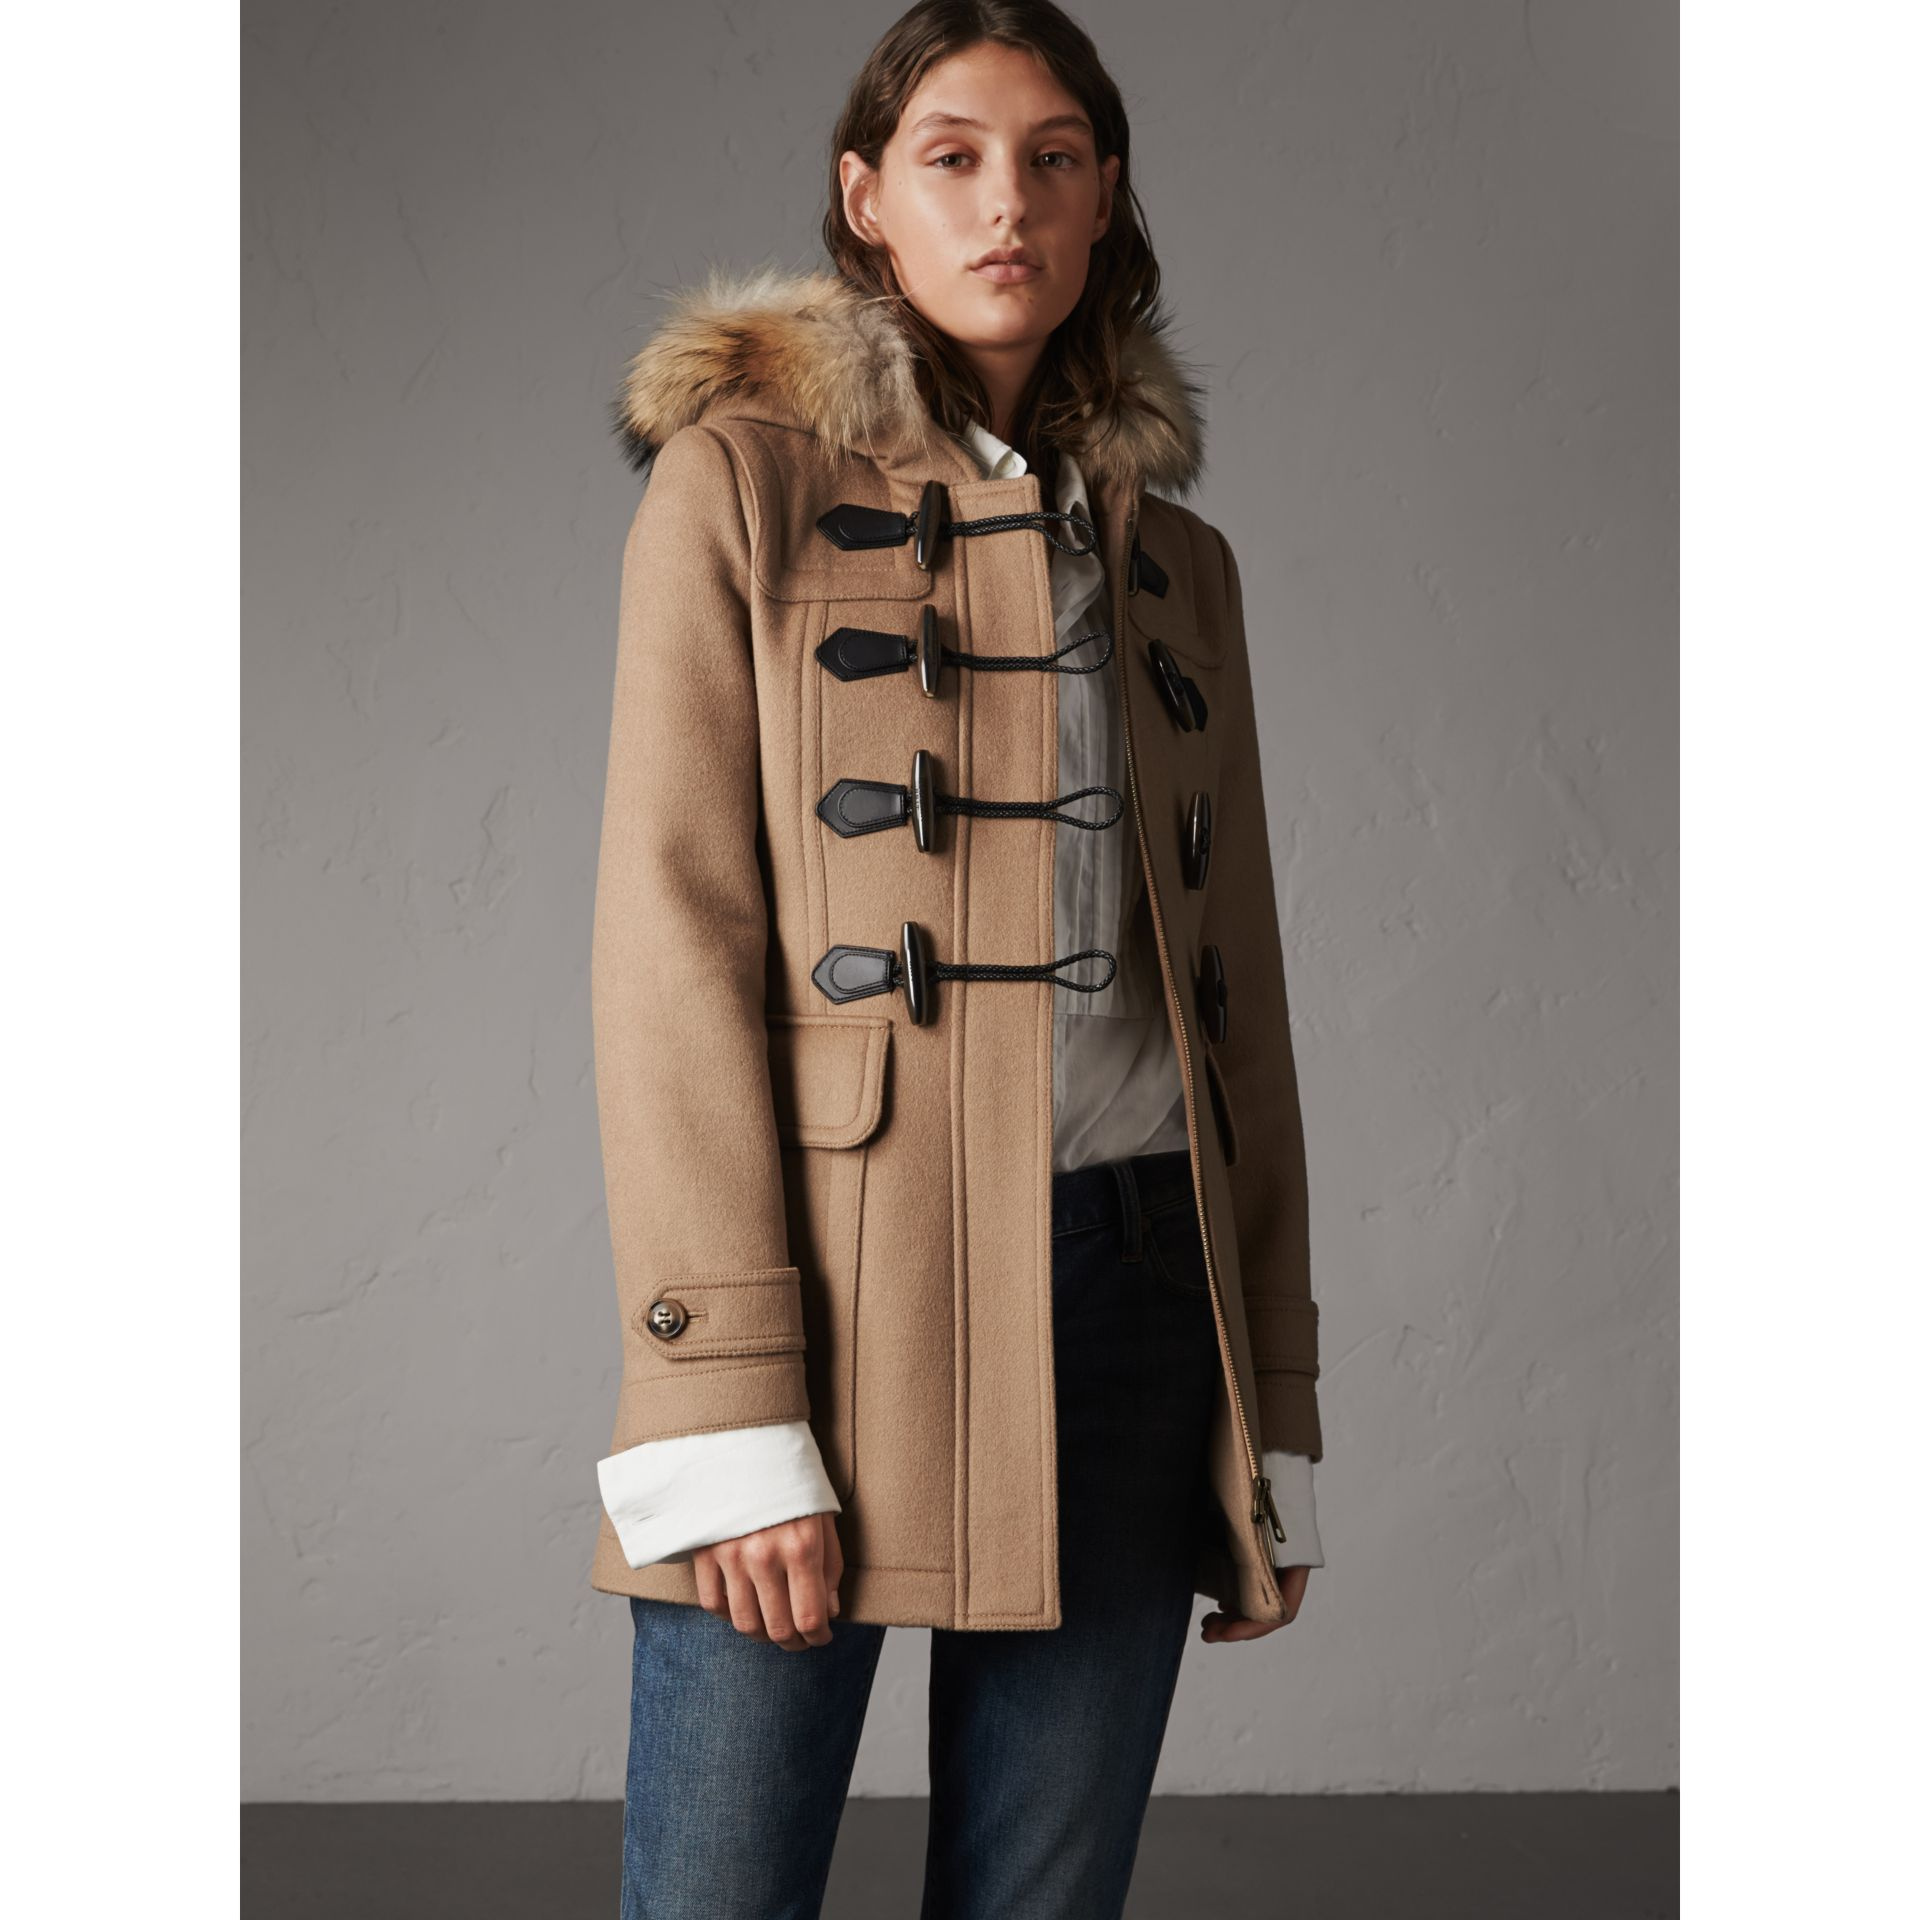 Duffle-coat en laine avec bordure en fourrure amovible (Camel) - Femme | Burberry - photo de la galerie 0